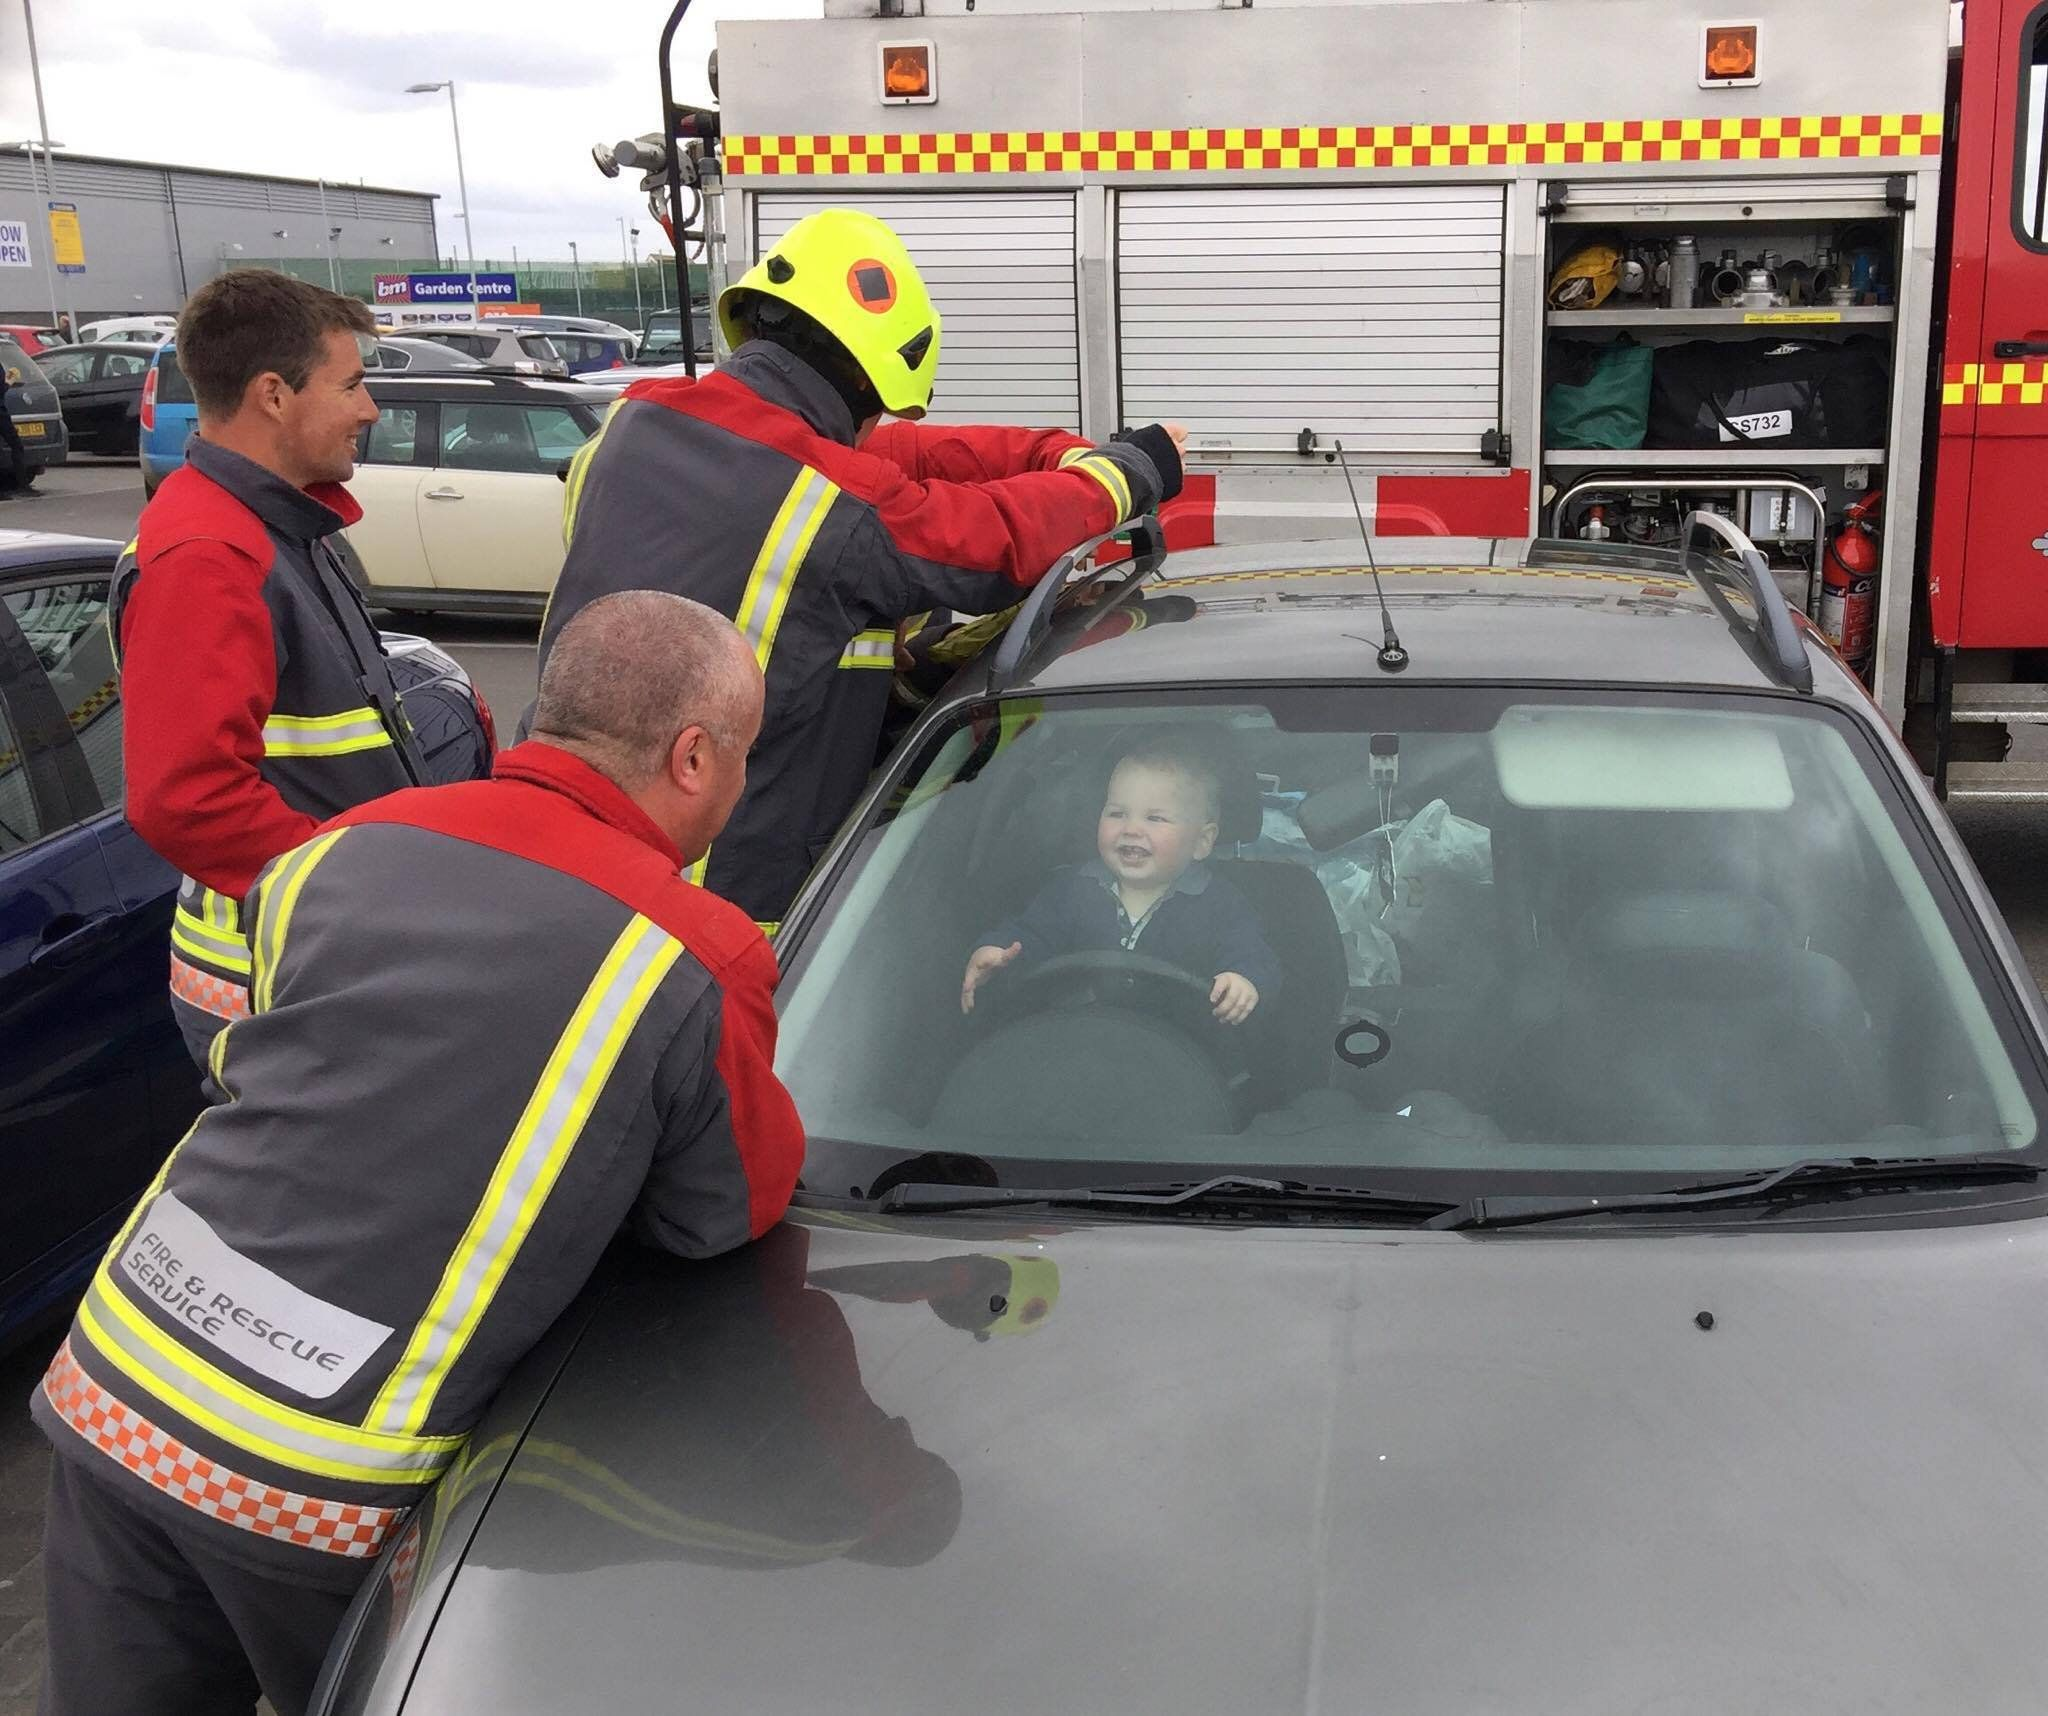 Toddler Looks Delighted As Firefighters Try To Free Him From Locked